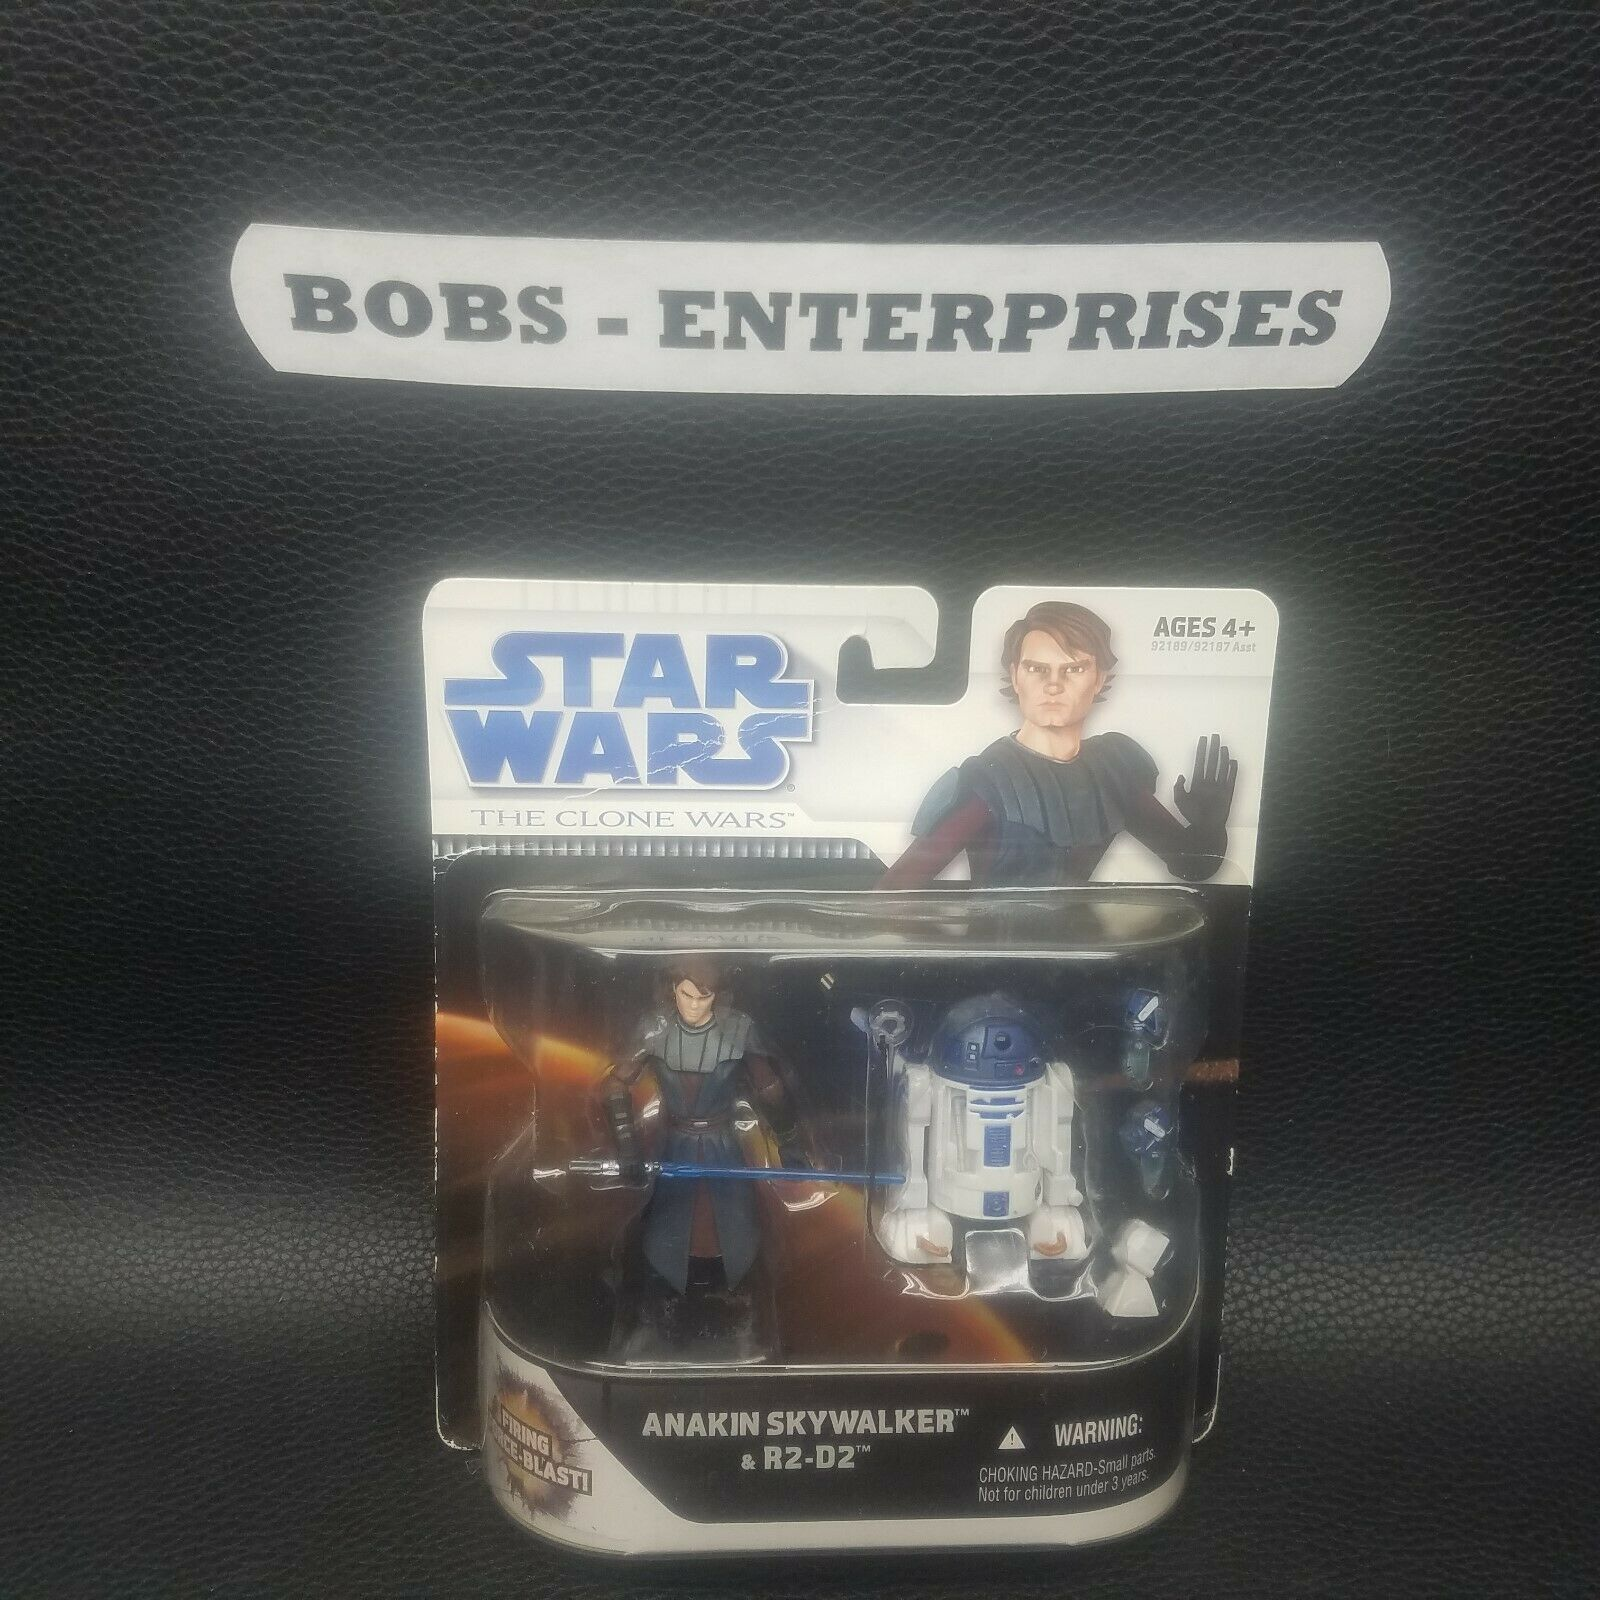 R2-D2 Anakin Skywalker 2009 STAR WARS WARS WARS Clone Wars  Force Blast CARD DMG. SW-93 e3306e